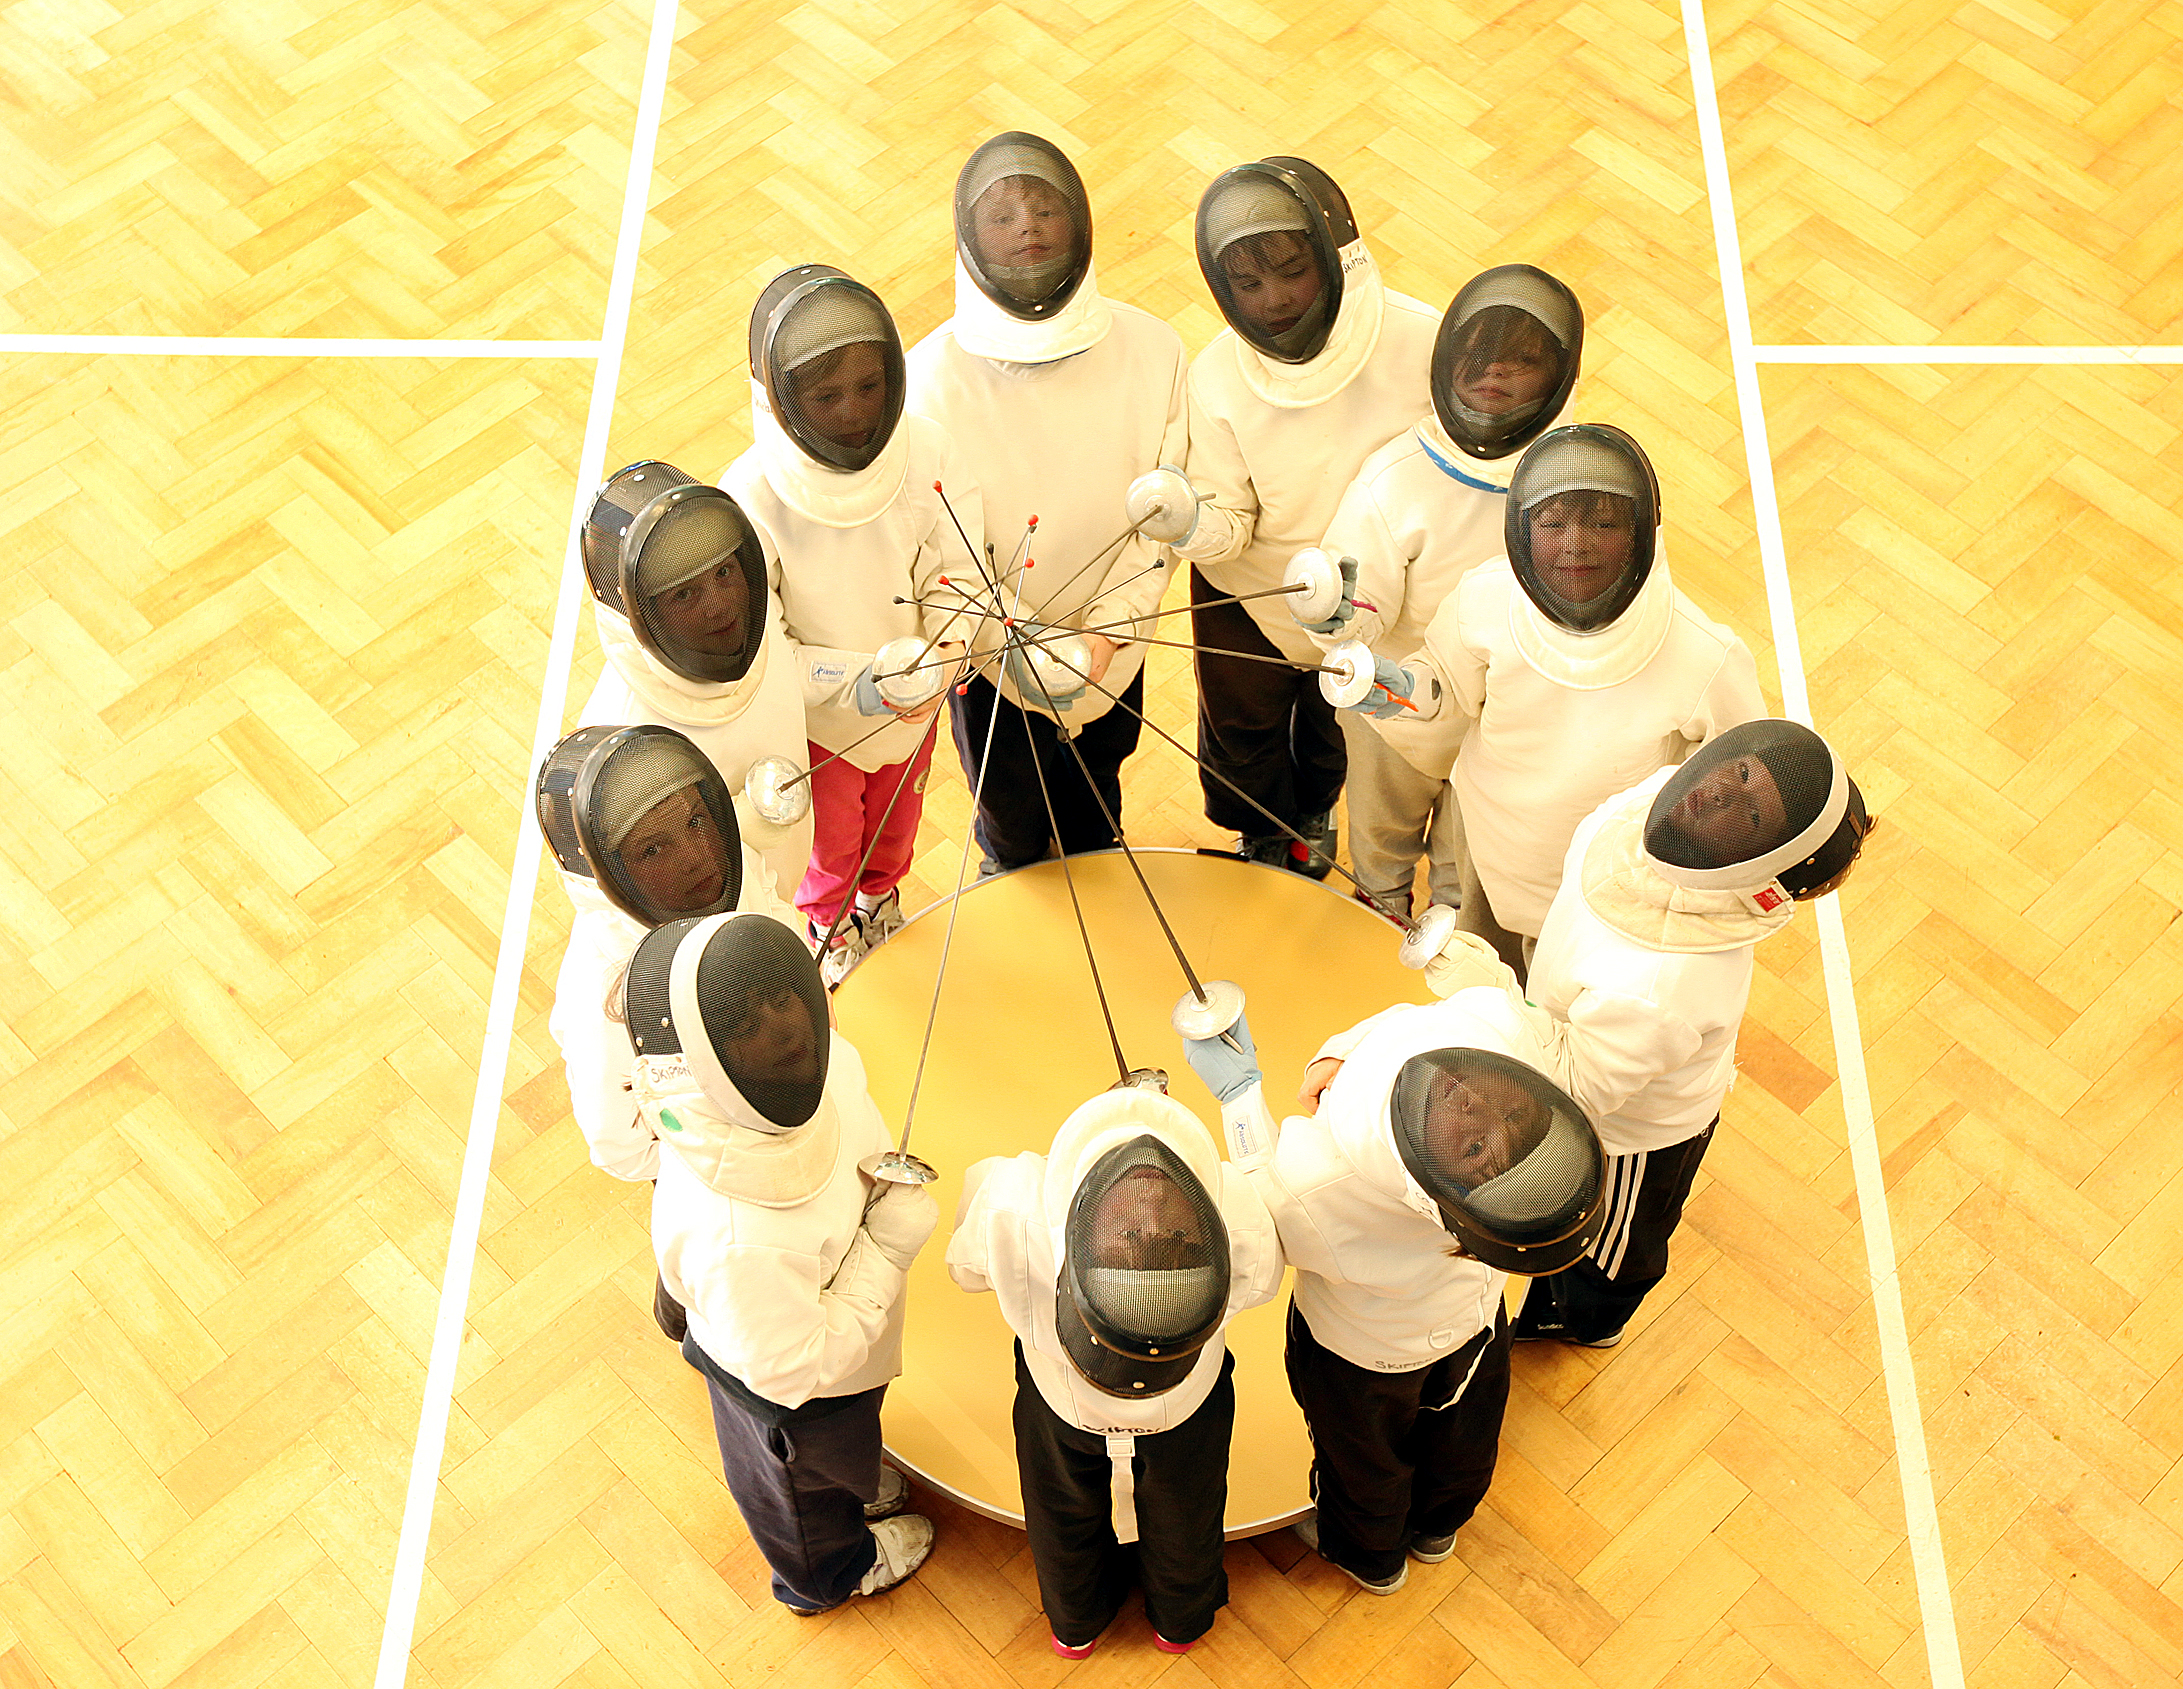 BEHIND THE MASK Greatwood Primary School's new after-school fencing club